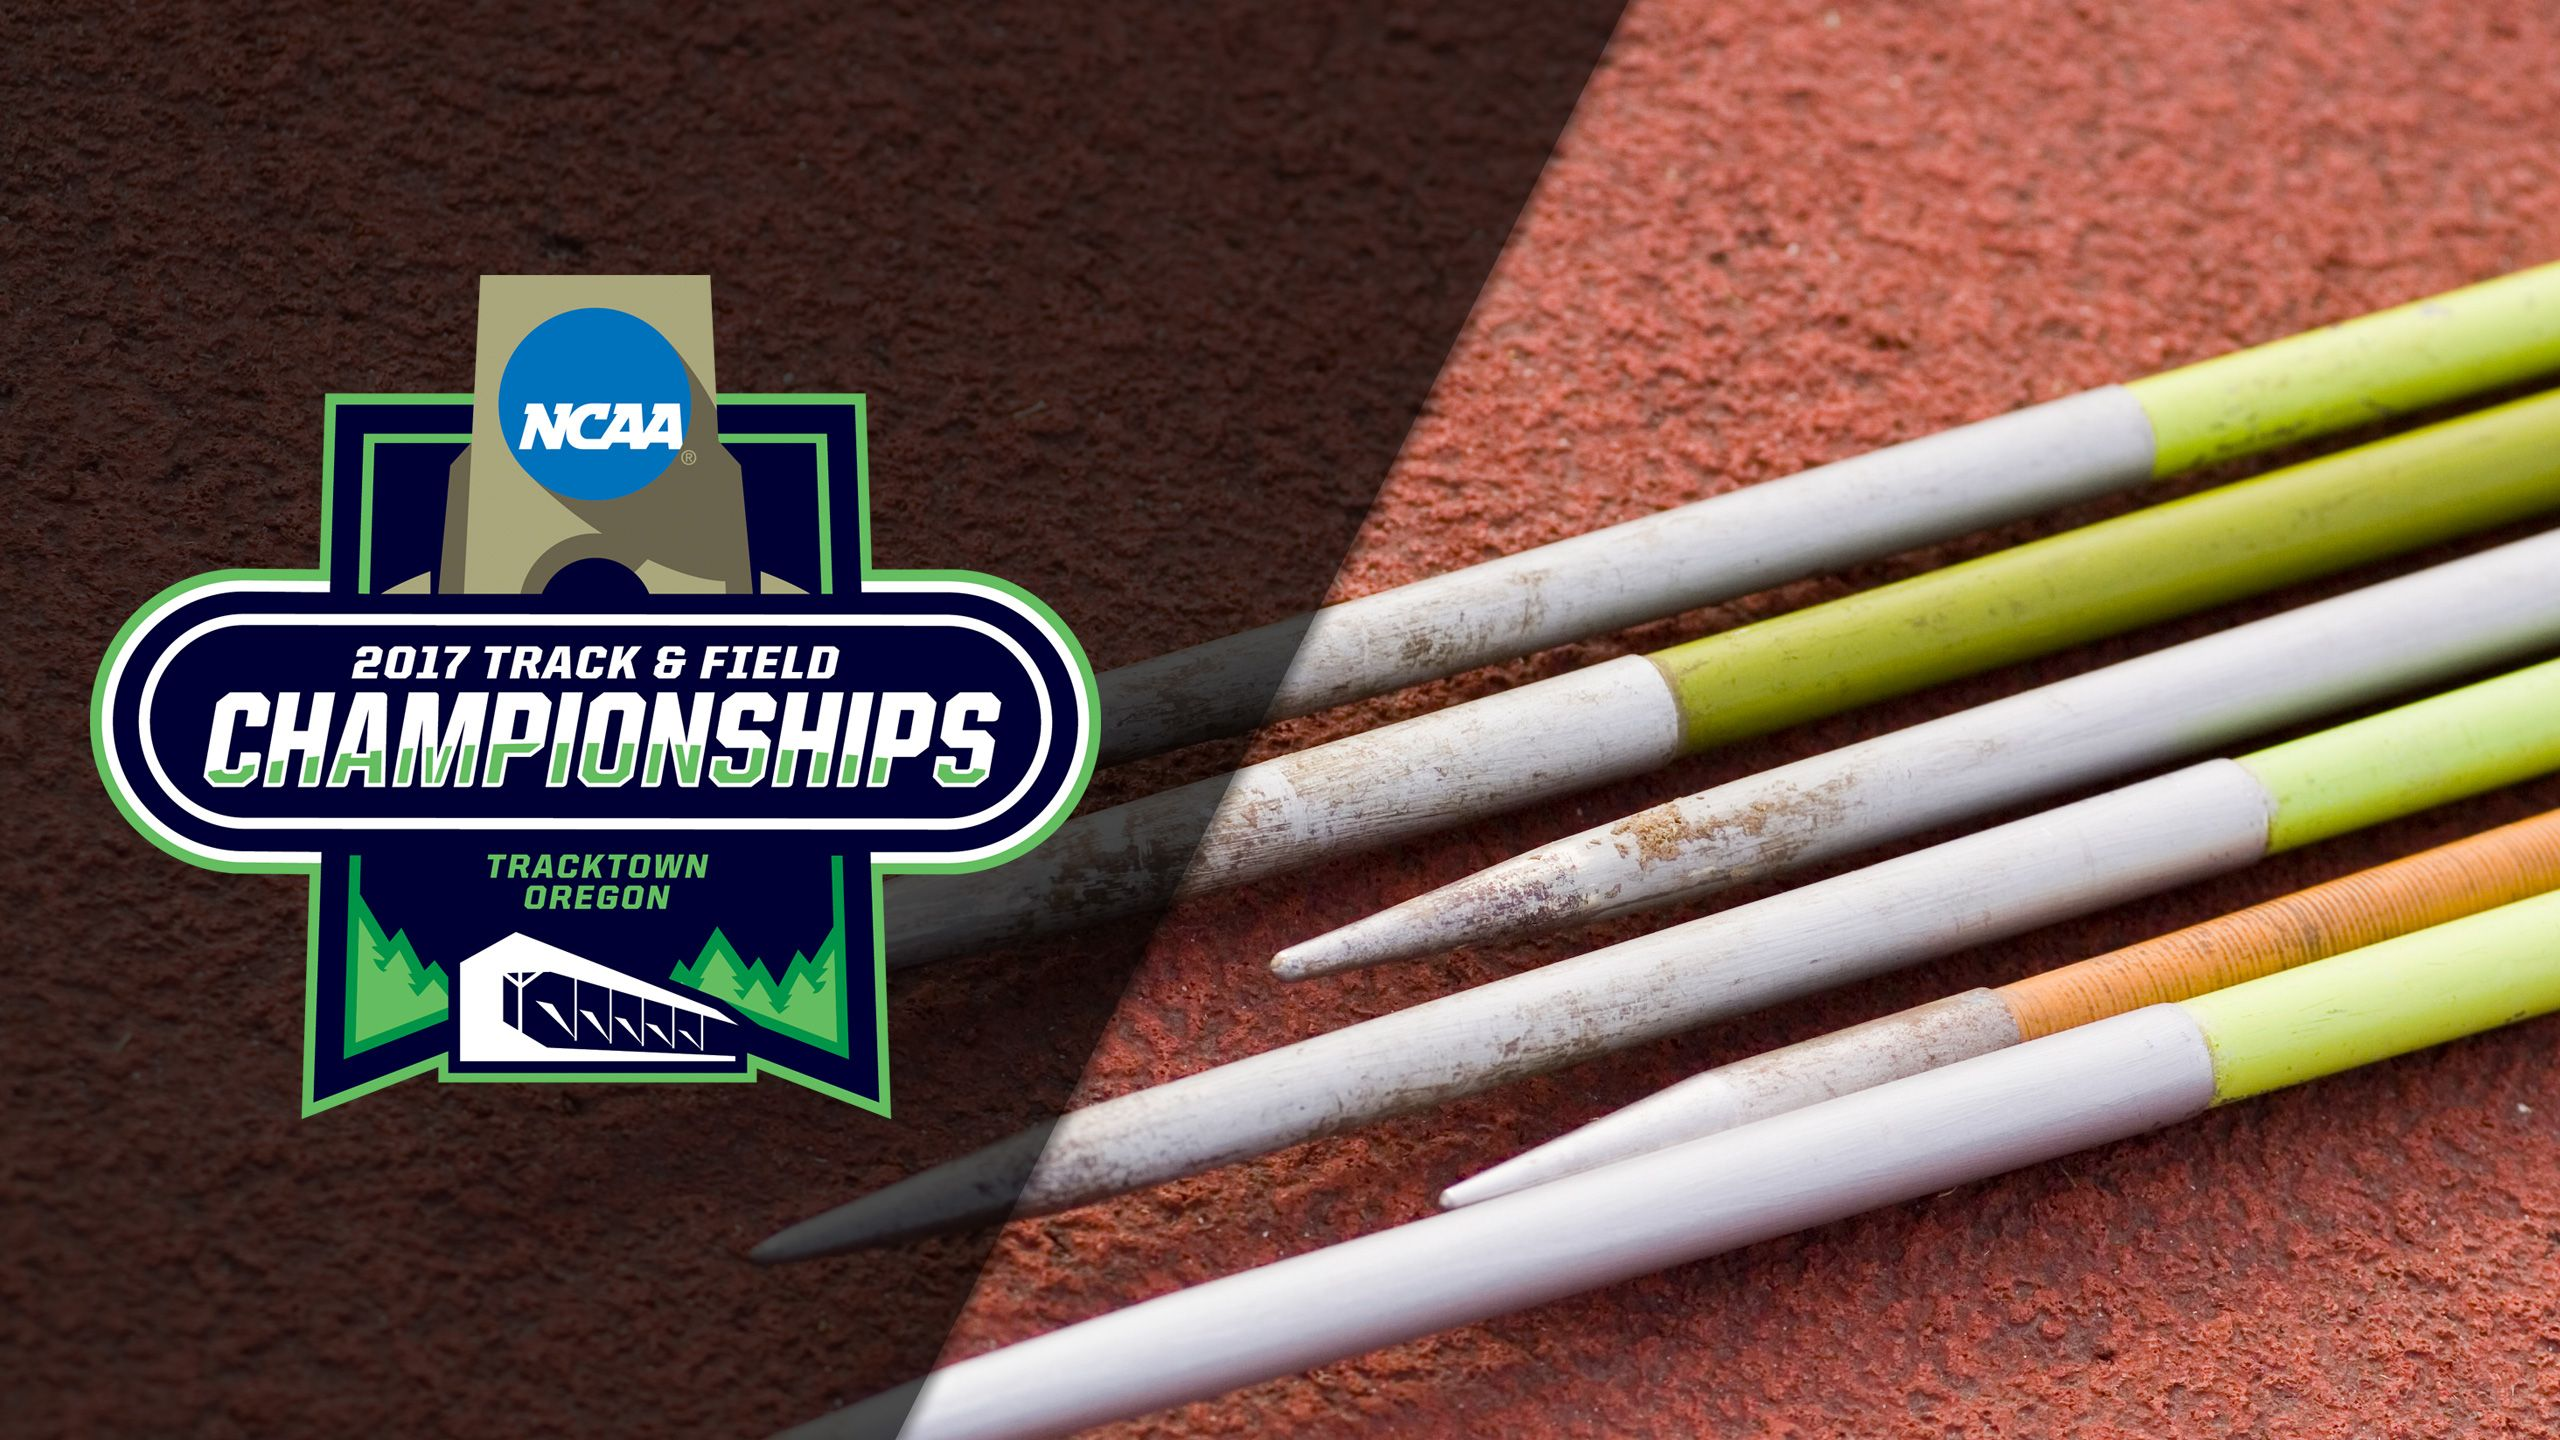 NCAA Track & Field Outdoor Championships - Decathlon: Javelin Throw